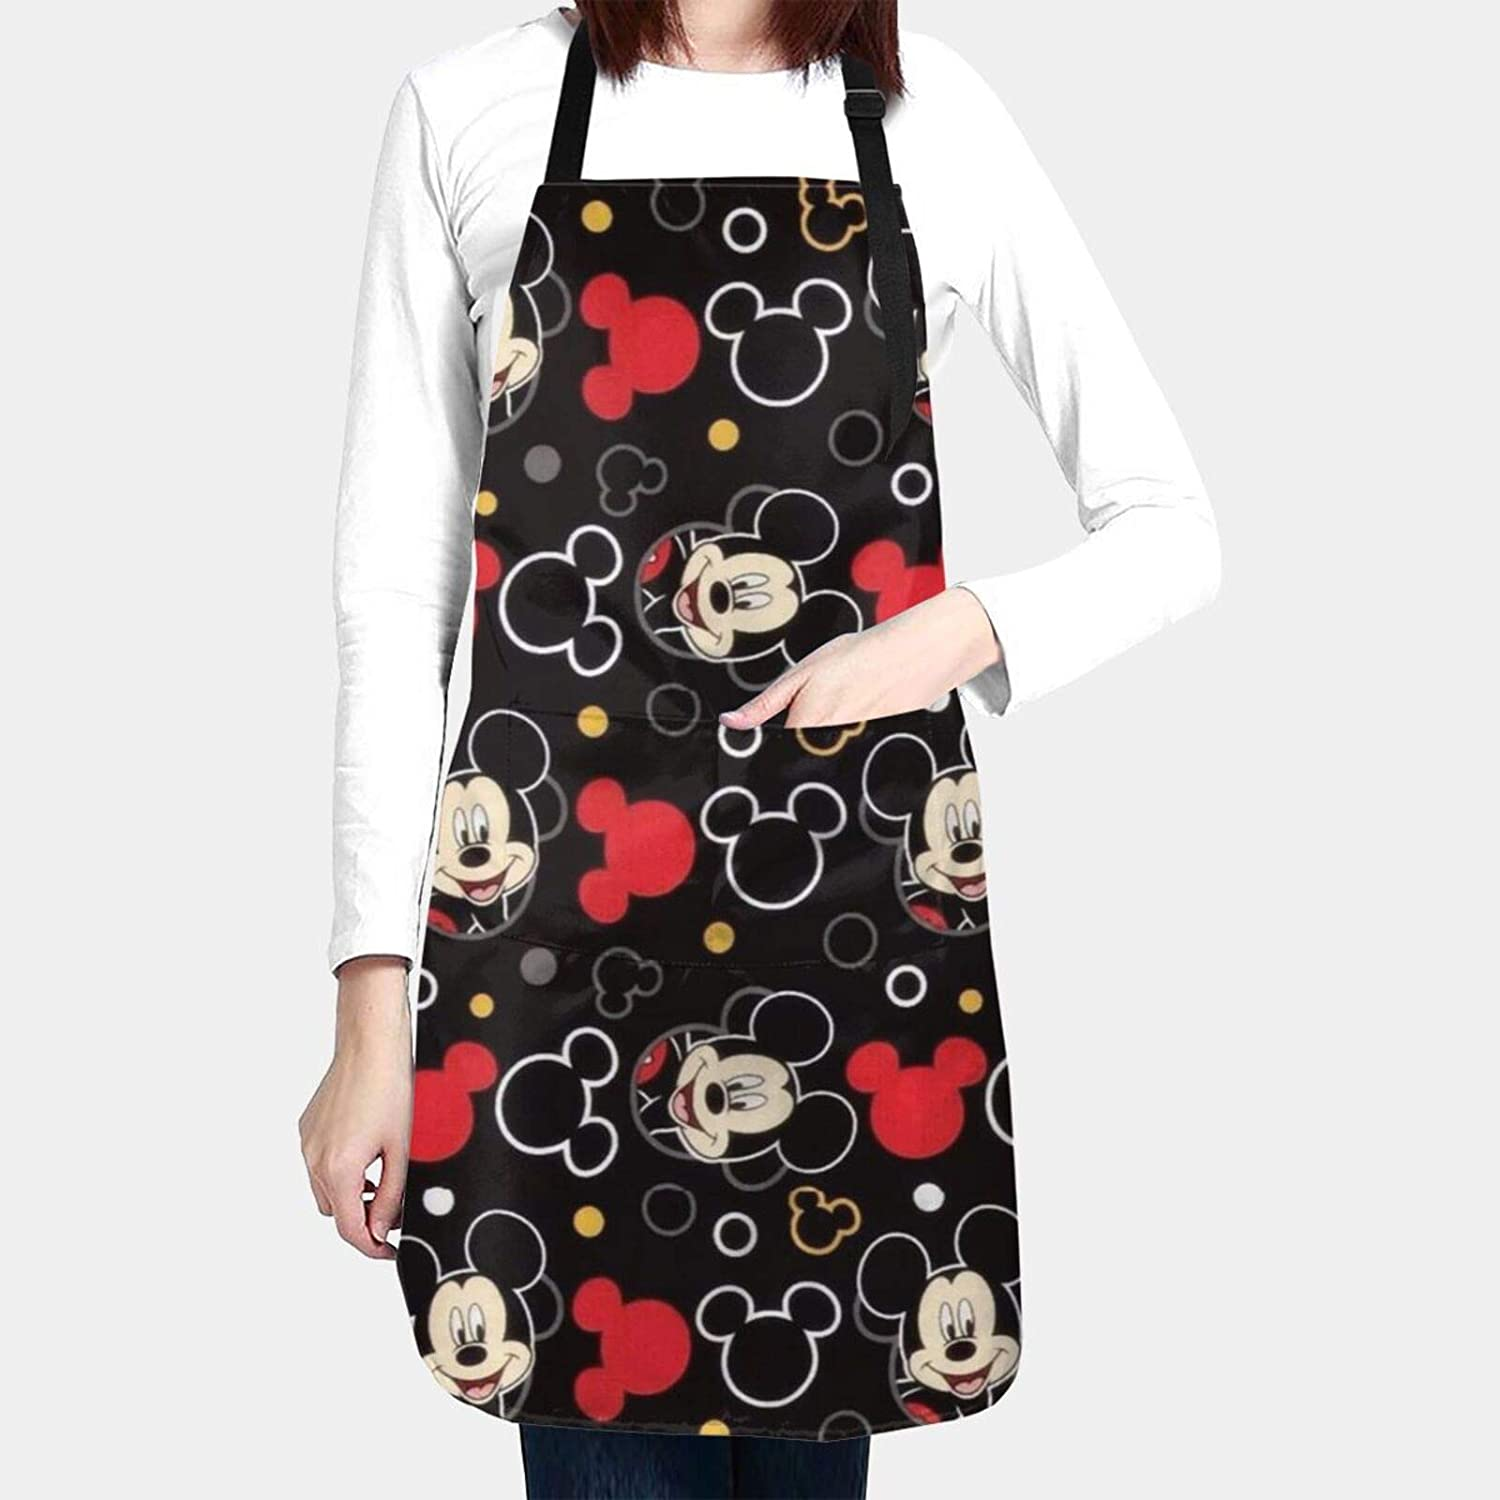 WOMFUI Anime Mic-Key Mouse Kitchen Chef Apron Unisex Black Apron Adjustable Extra Long Ties 2 Pockets for Home Cooking